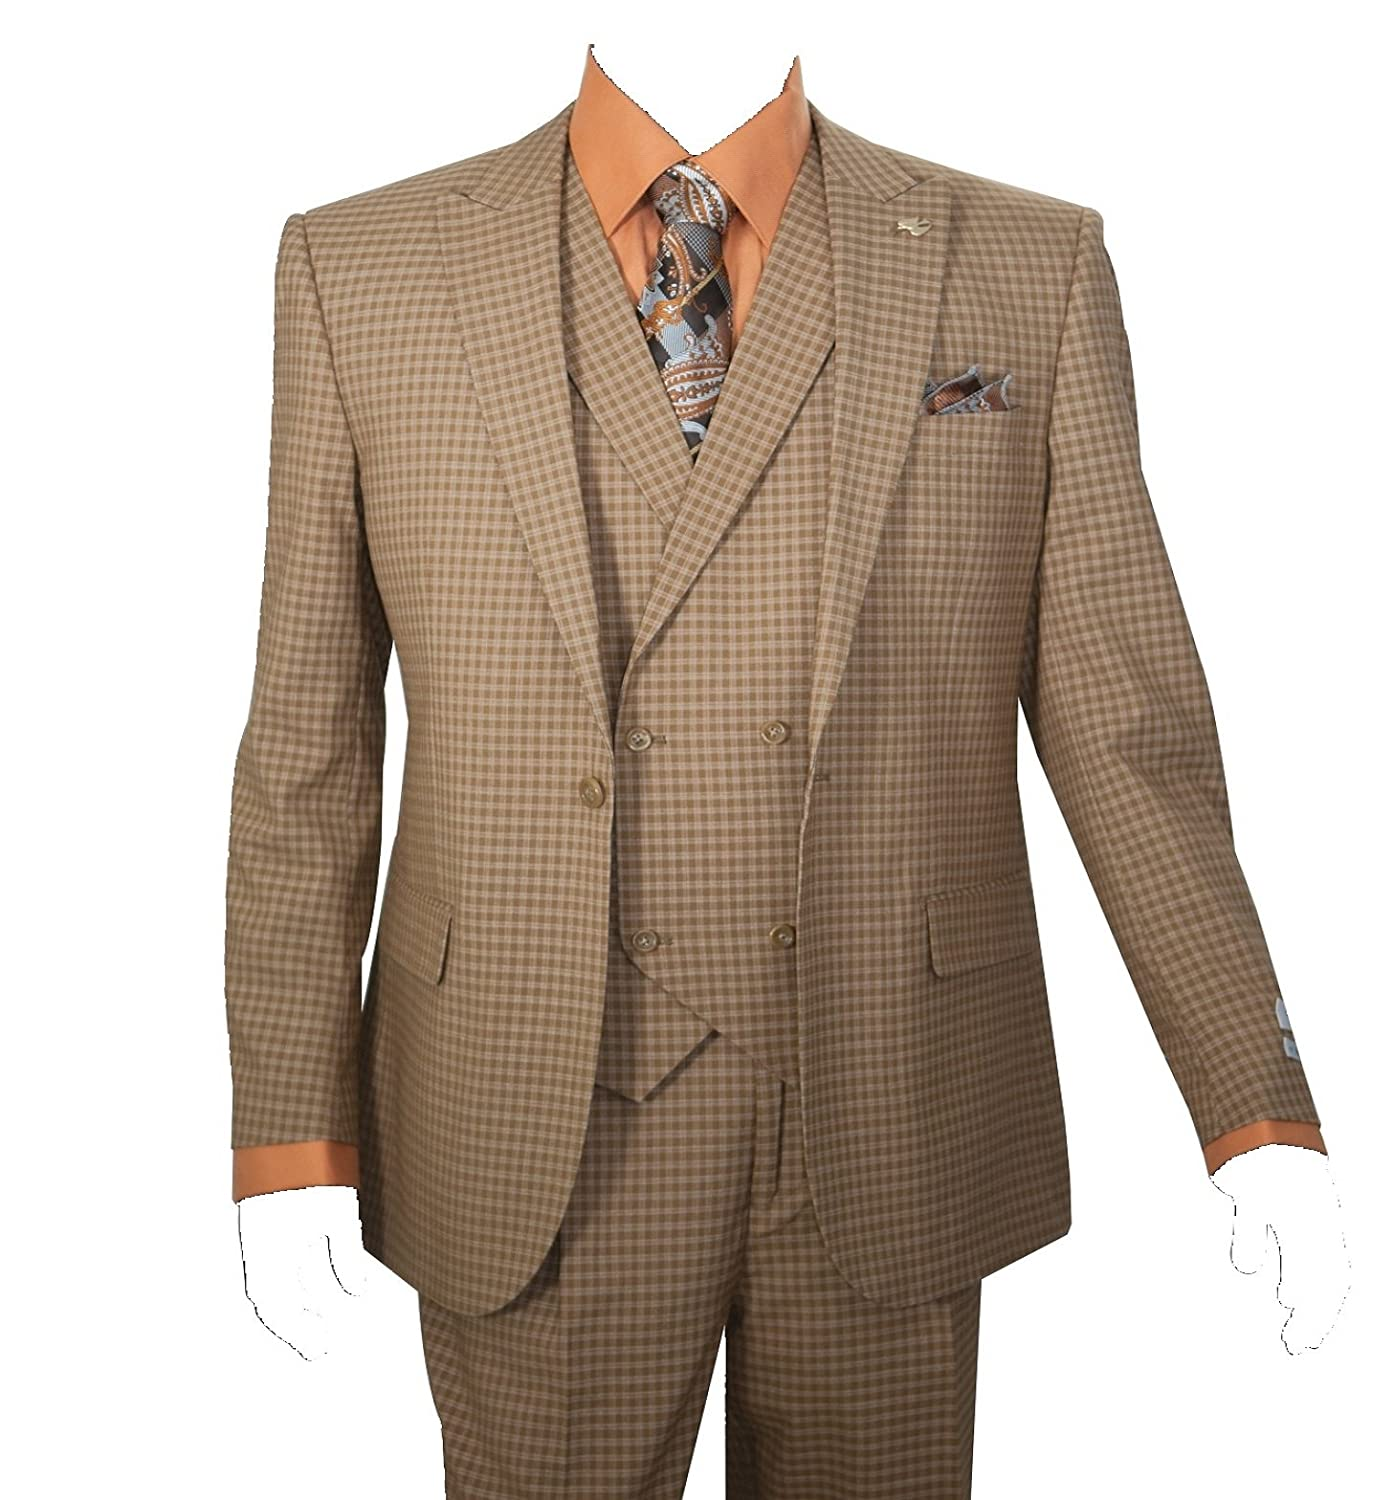 1920s Gangster – How to Dress Like Al Capone Mens 3 Piece Single Button Mini-Plaid Pattern Suit (Taupe) $149.99 AT vintagedancer.com